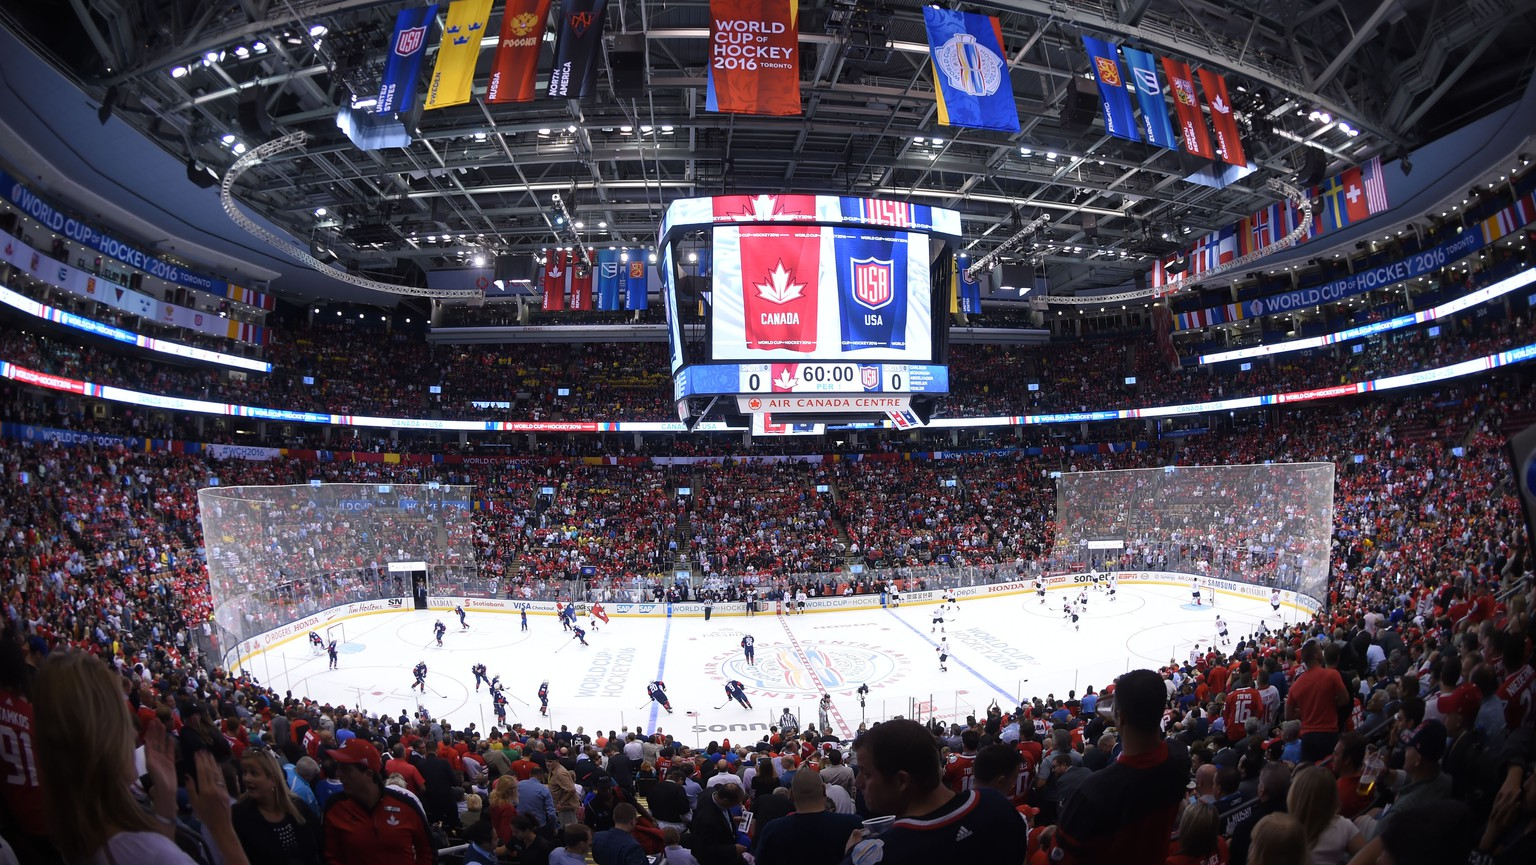 Sep 20, 2016; Toronto, Ontario, Canada;  A general view of the arena and stands prior to the opening faceoff of a preliminary round game between Team Canada and Team USA in the 2016 World Cup of Hockey at Air Canada Centre. Mandatory Credit: Dan Hamilton-USA TODAY Sports